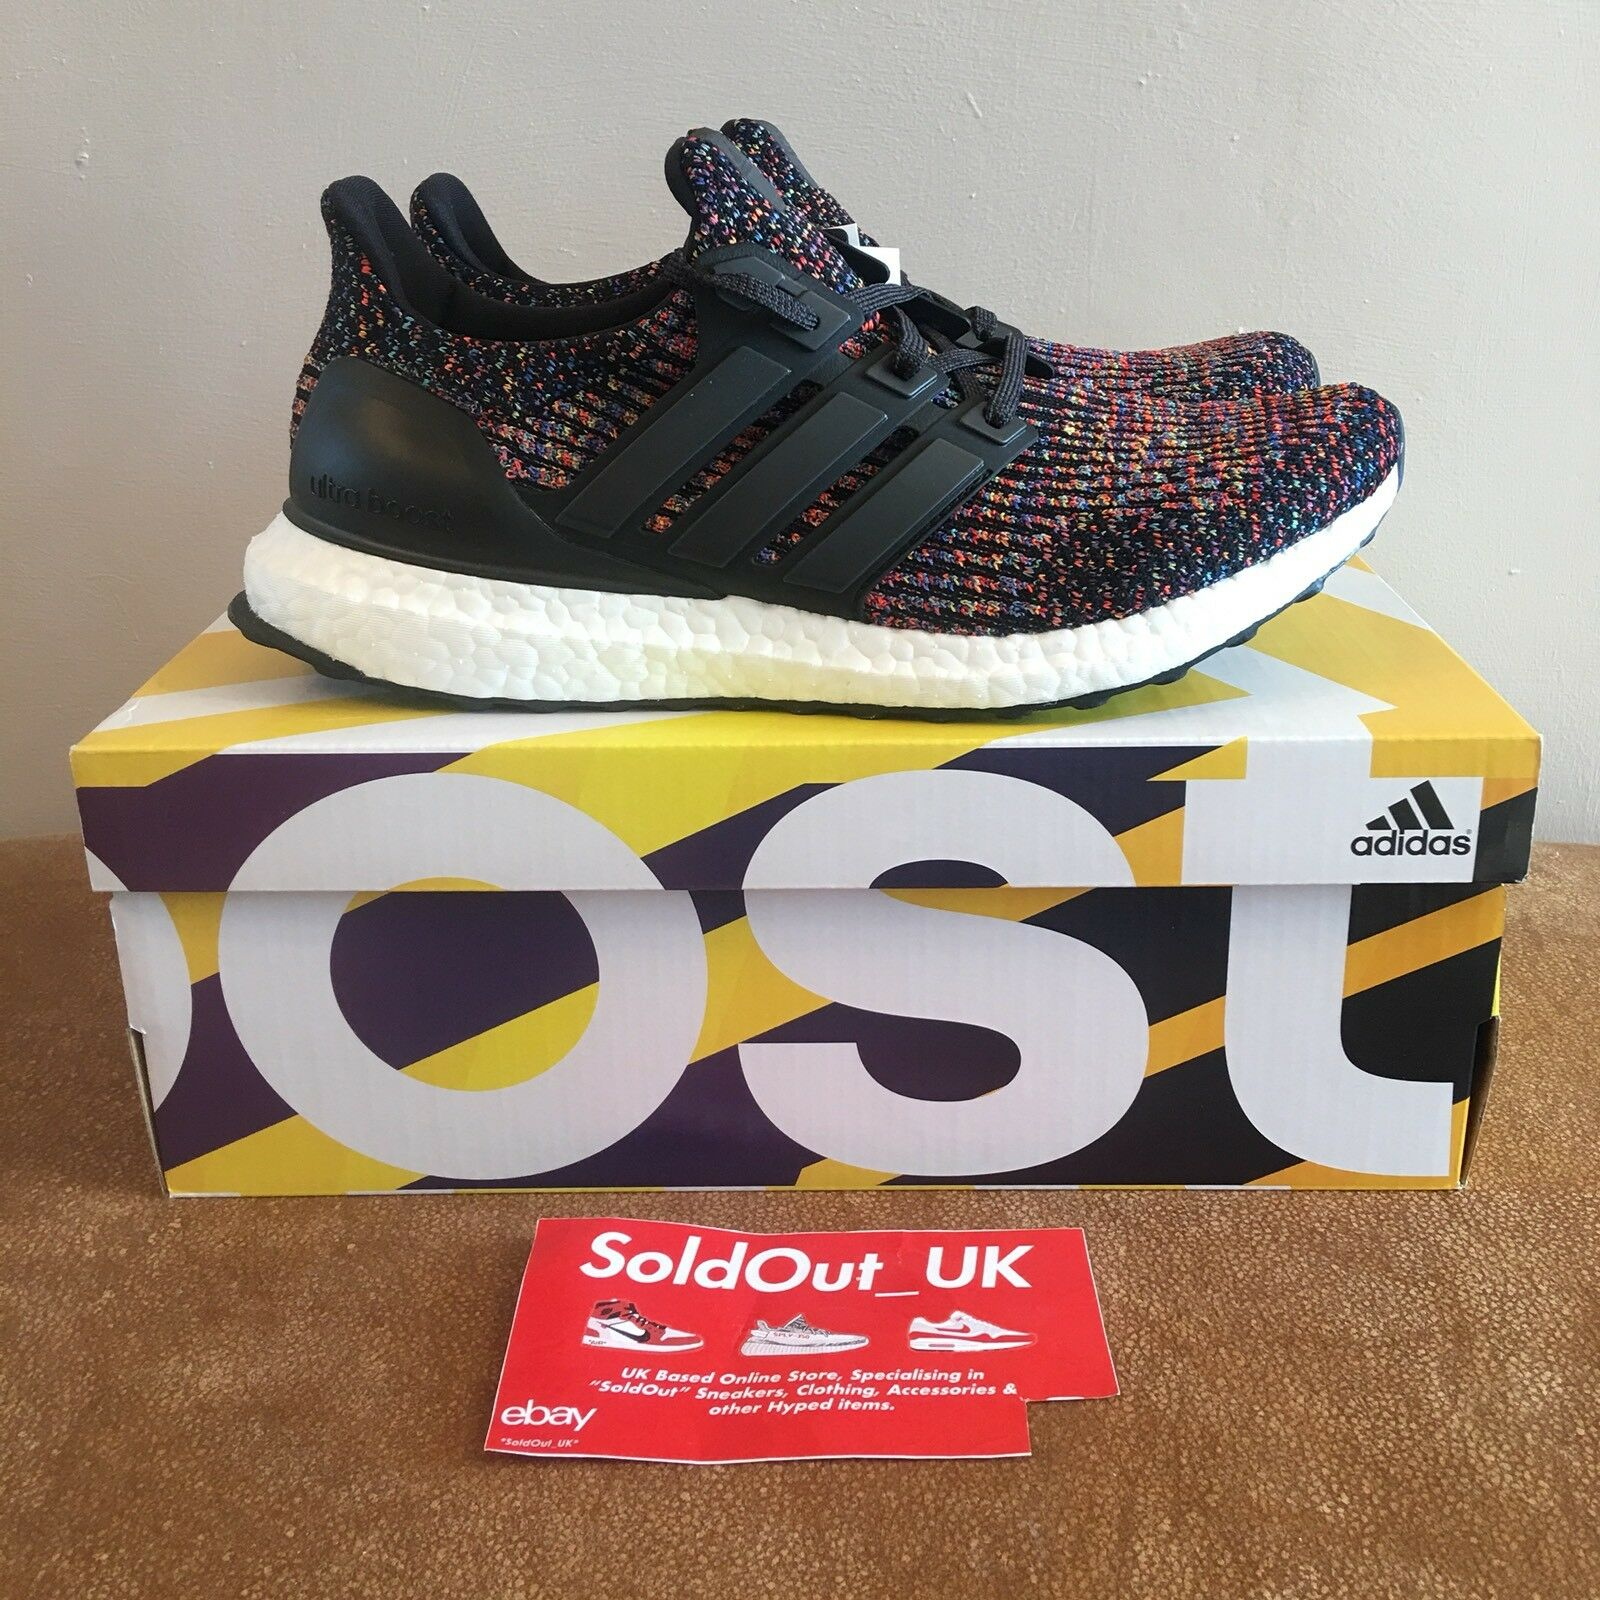 Adidas Ultra Boost Multicolour 3.0 Ltd  UK8 US8.5 CG3004 scorte morte